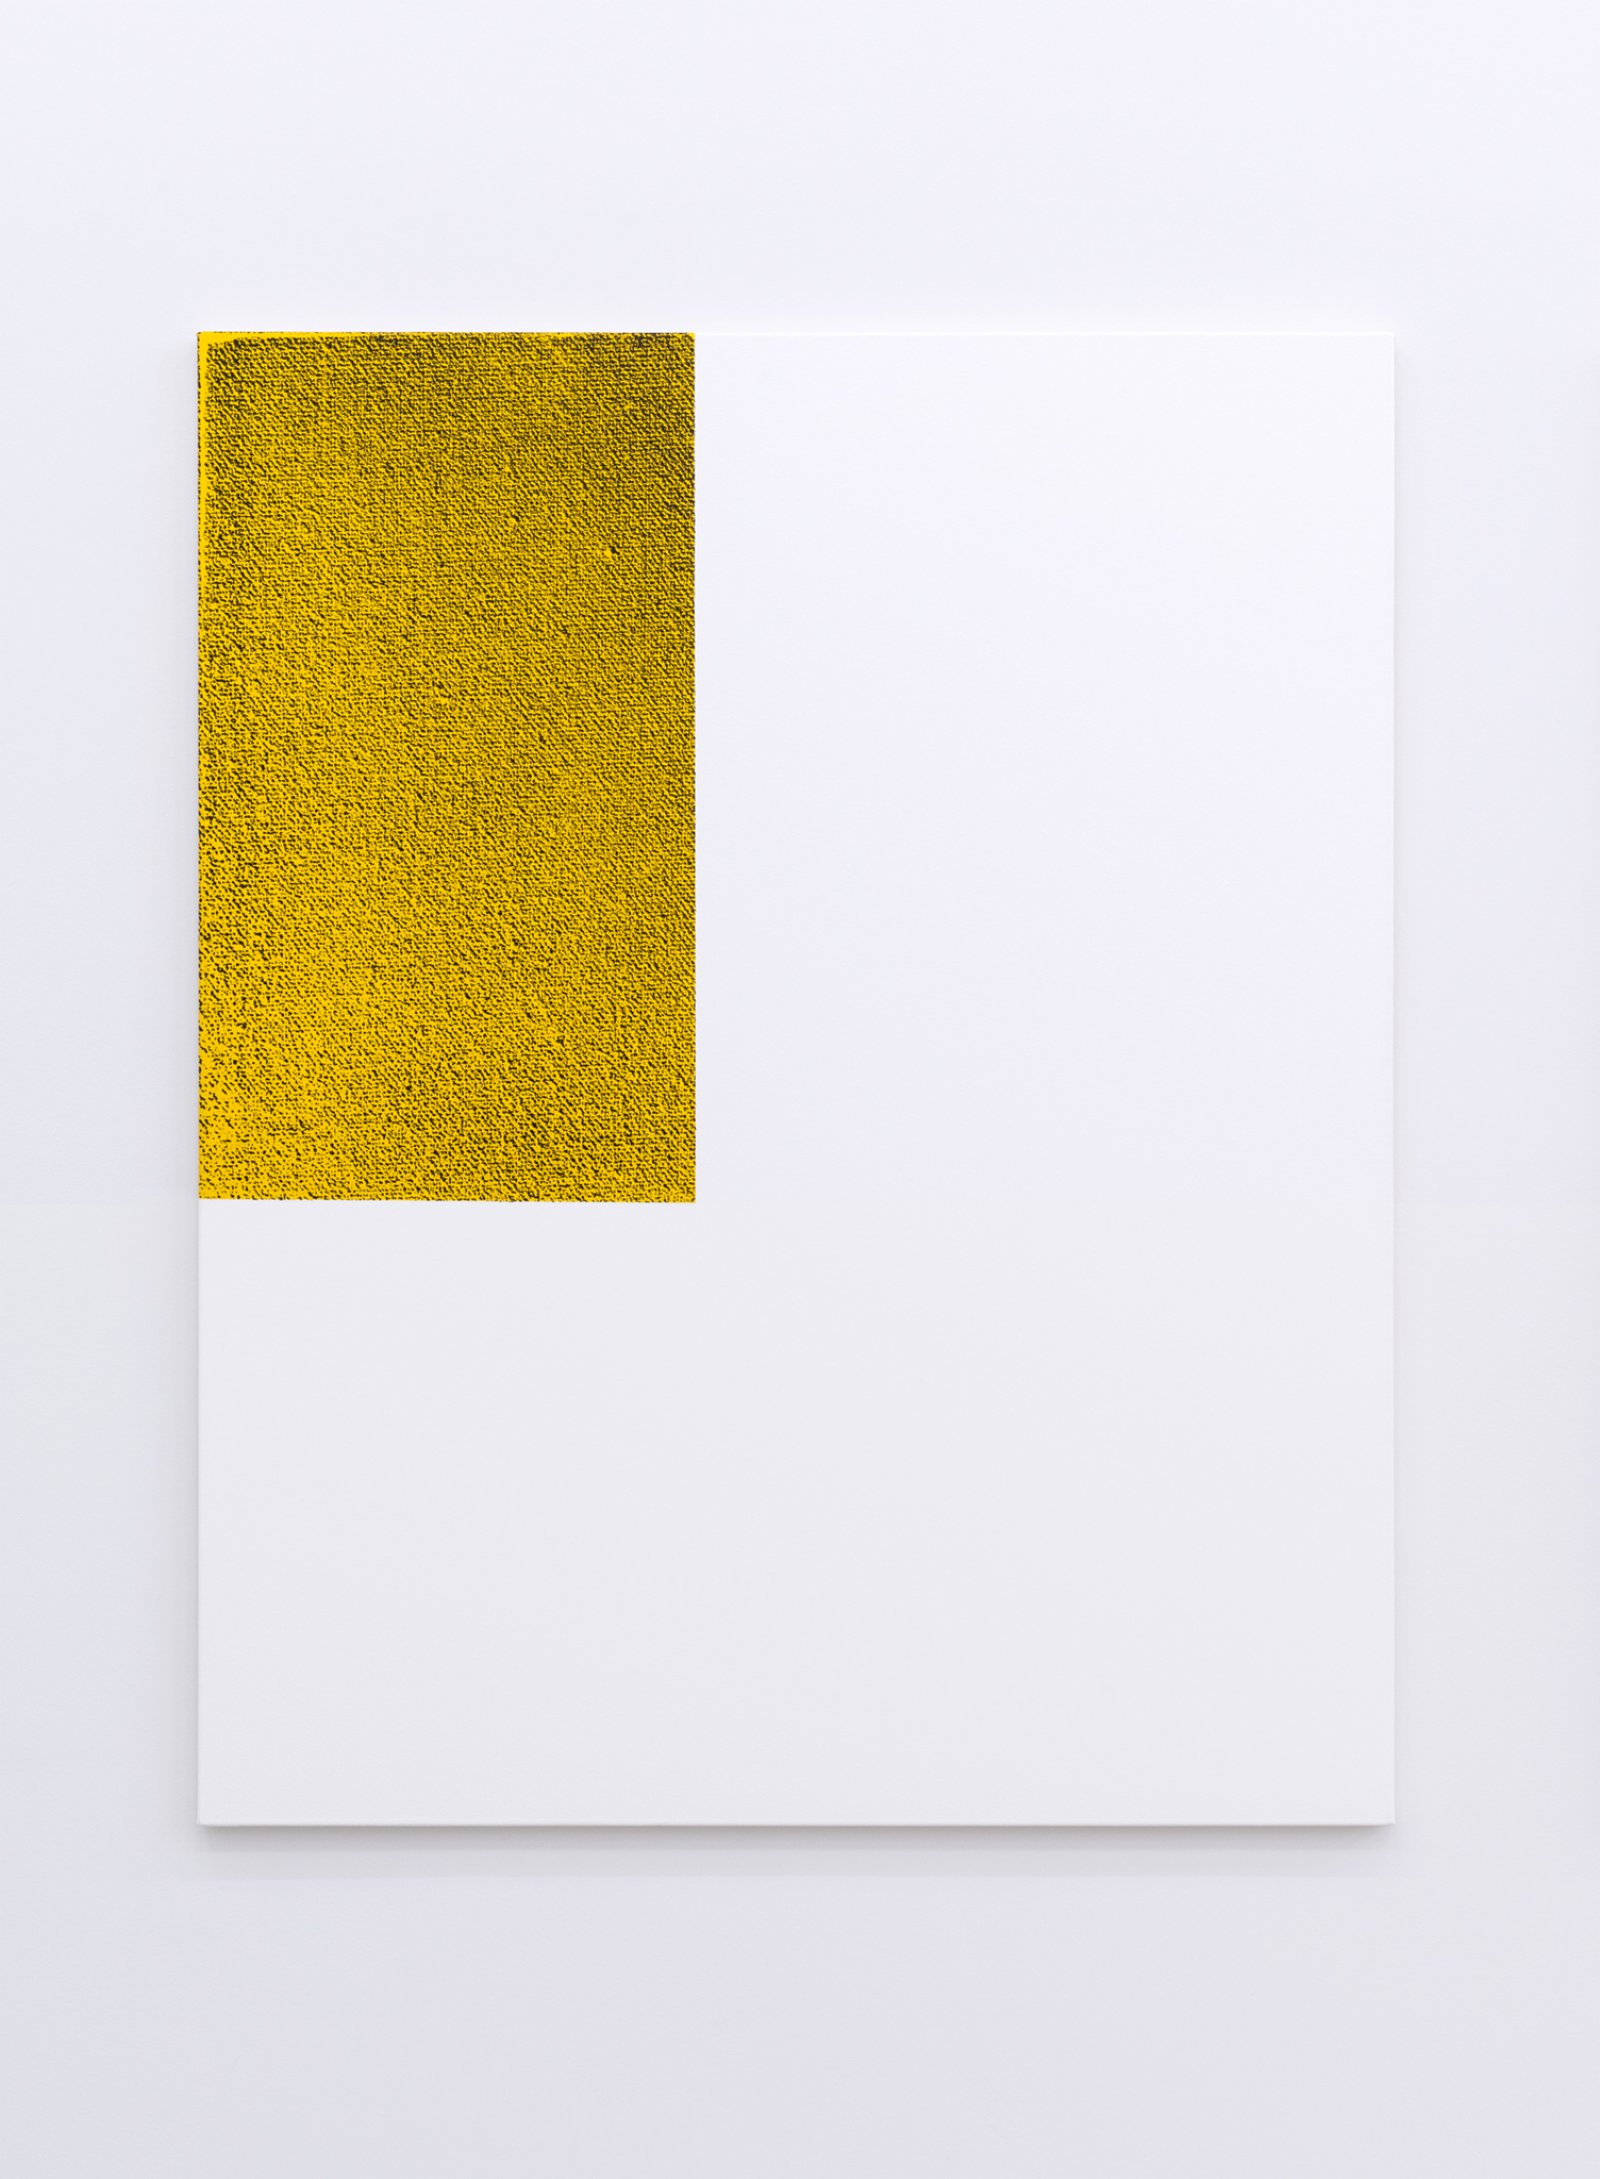 Ian Wallace, Untitled (Monochrome Structure II) (detail), 2014, diptych, silkscreen and acrylic on canvas, each 60 x 48 in. (153 x 122 cm) by Ian Wallace